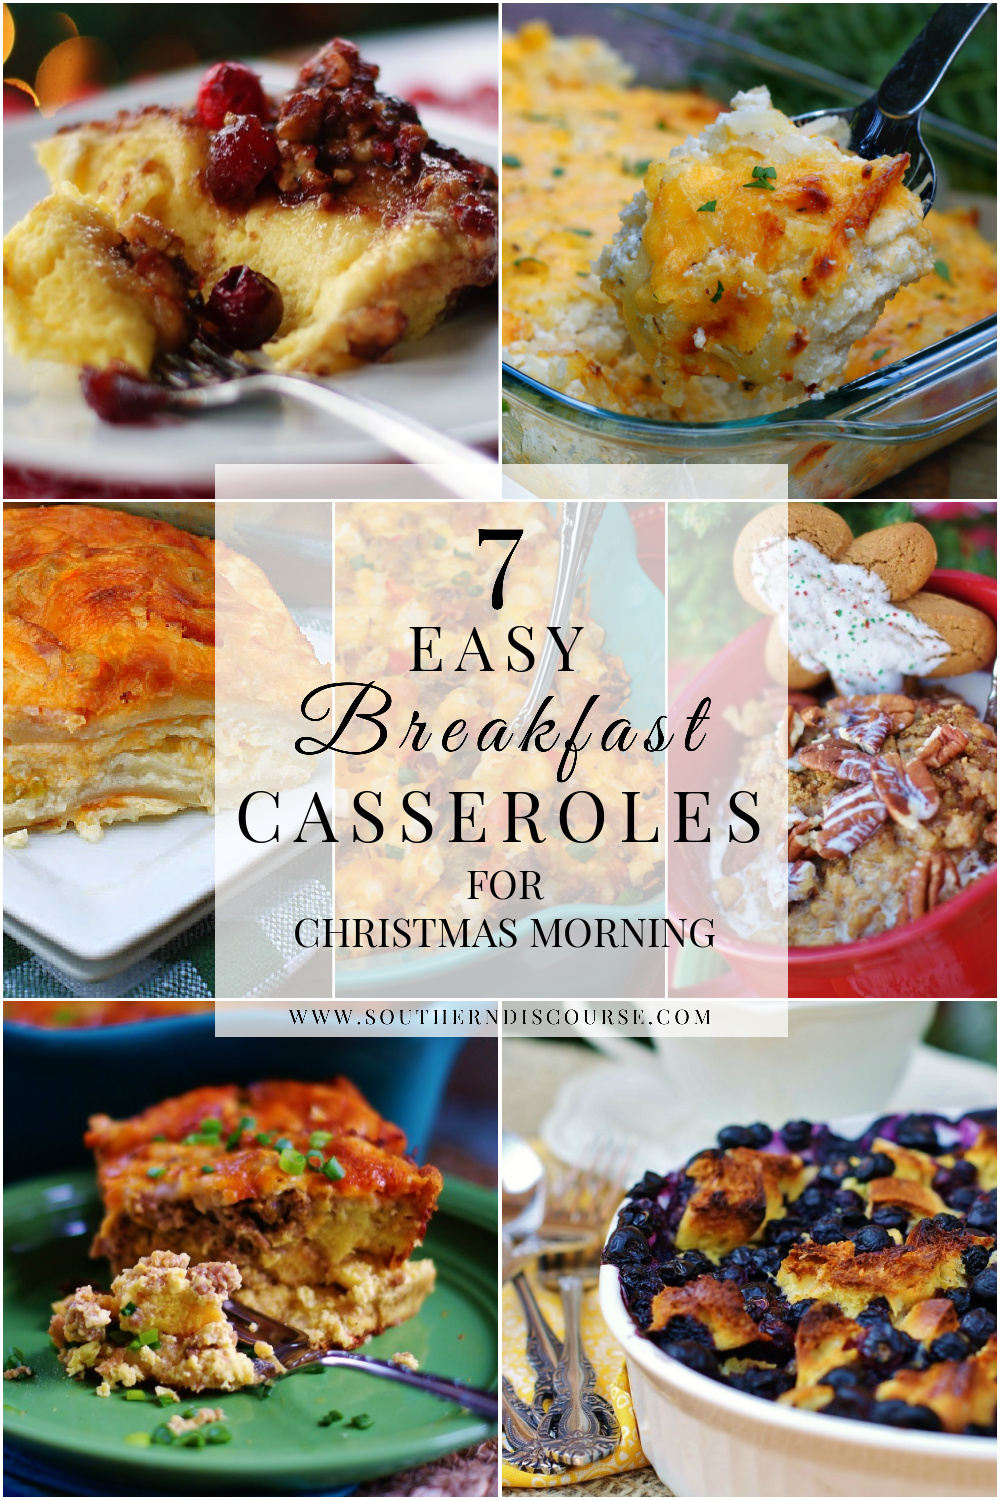 7 easy breakfast casseroles for Christmas morning. 5 quick overnight casseroles and 2 simple breakfast classics to make the day of. From overnight gingerbread oatmeal to a cheesy hashbrown casserole, this collection makes holiday mornings delicious!